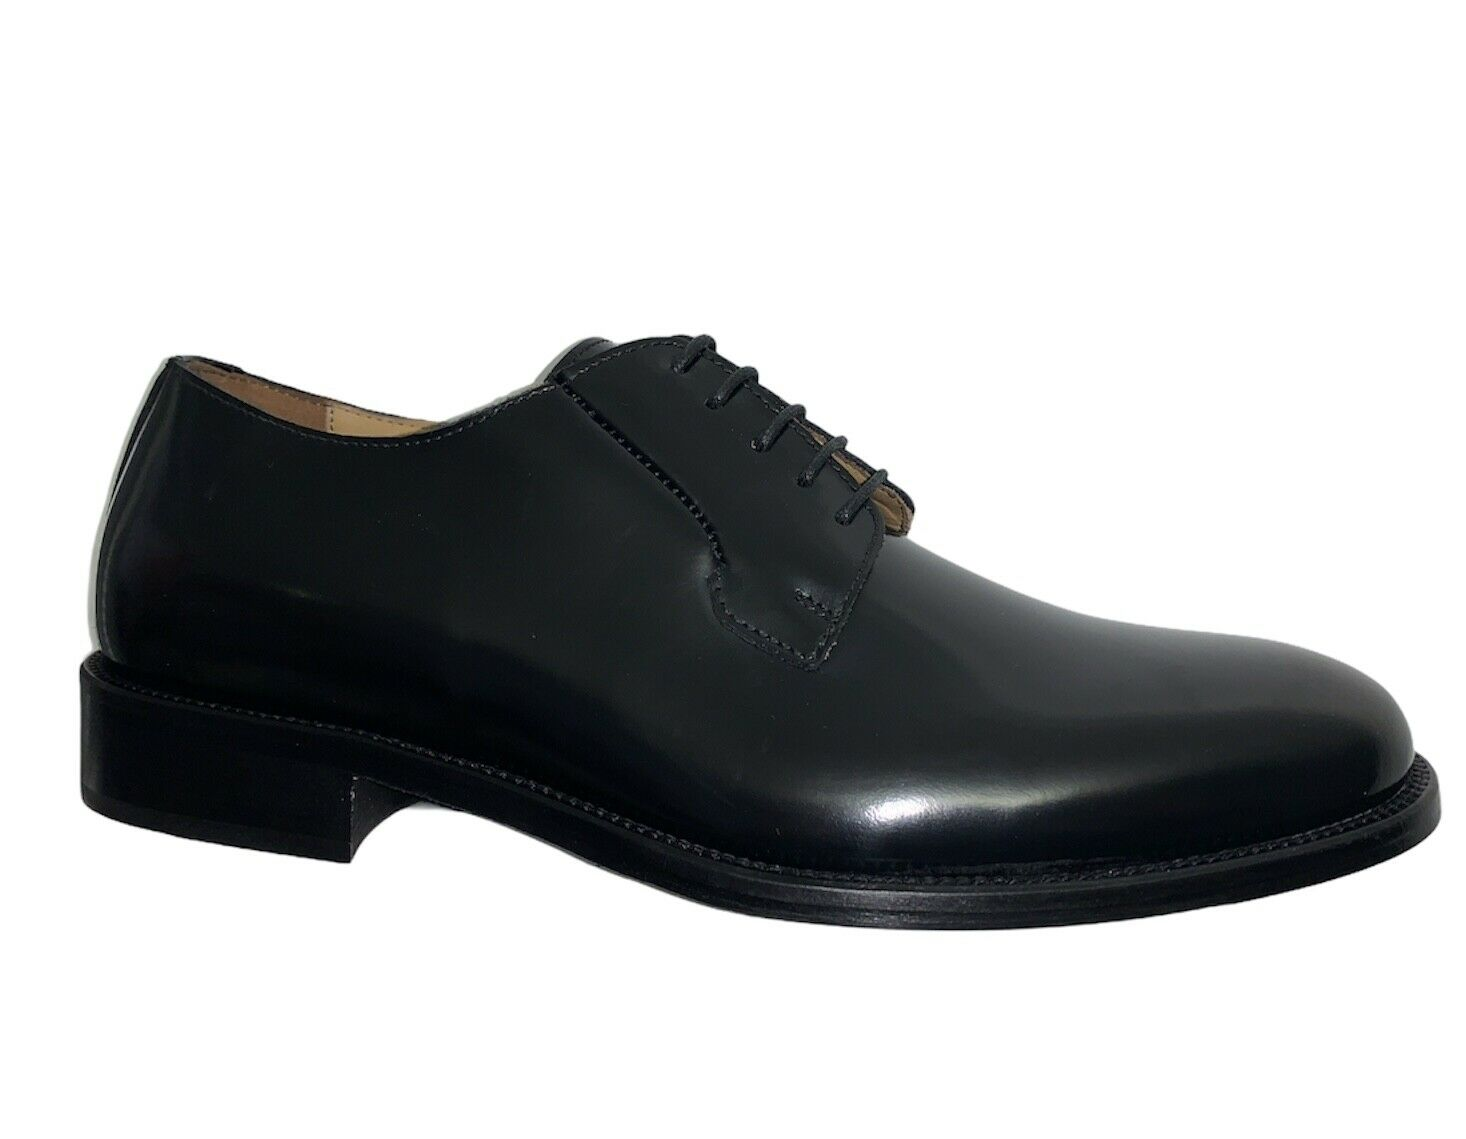 ROGAL'S Elegant Shoes Man cerimonia Leather Black Leather - Made IN Italy